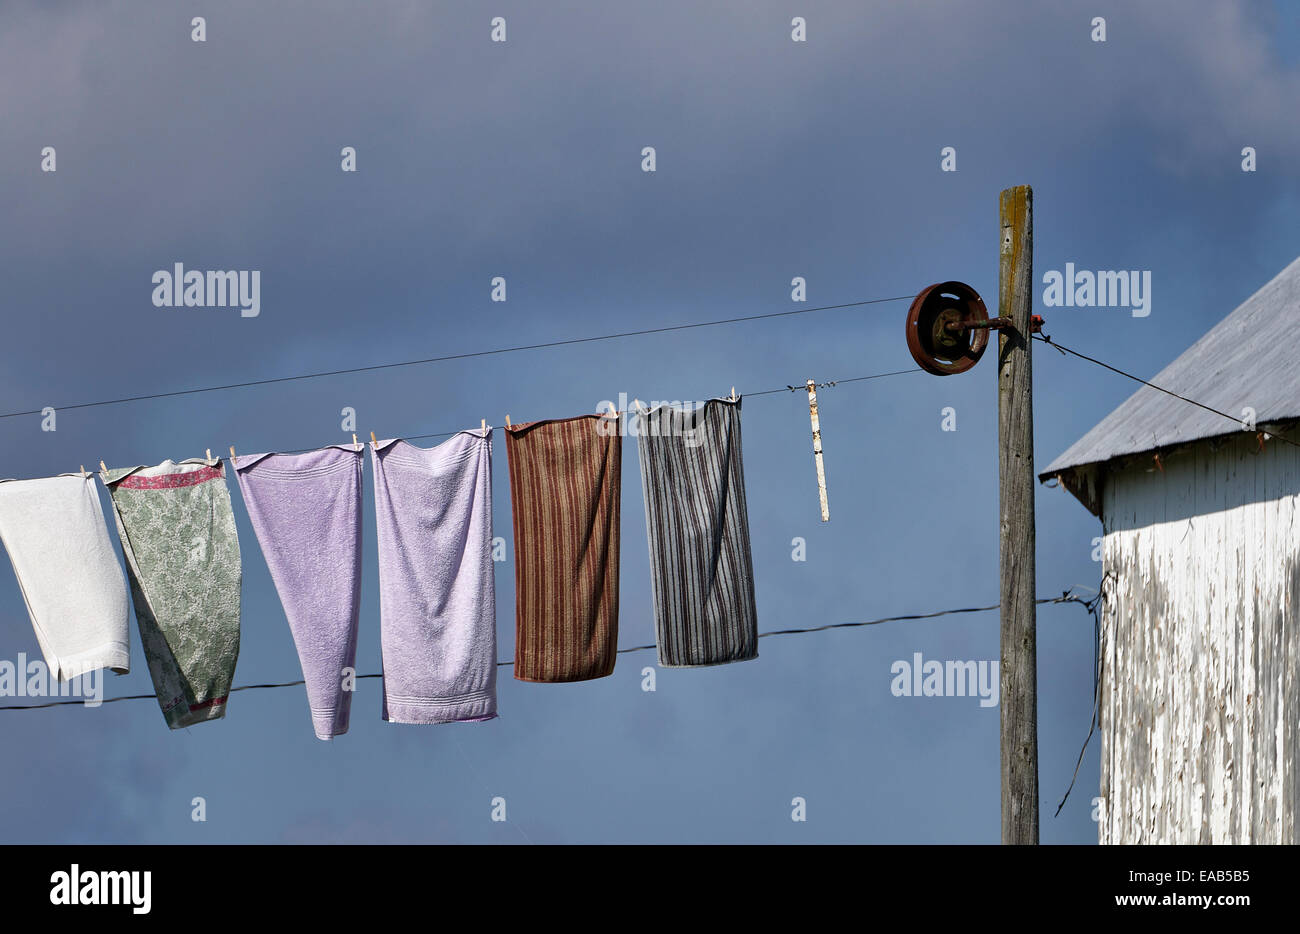 Laundry hangs to dry on an Amish farm clothesline, New Holland, Lancaster County, Pennsylvania, USA - Stock Image